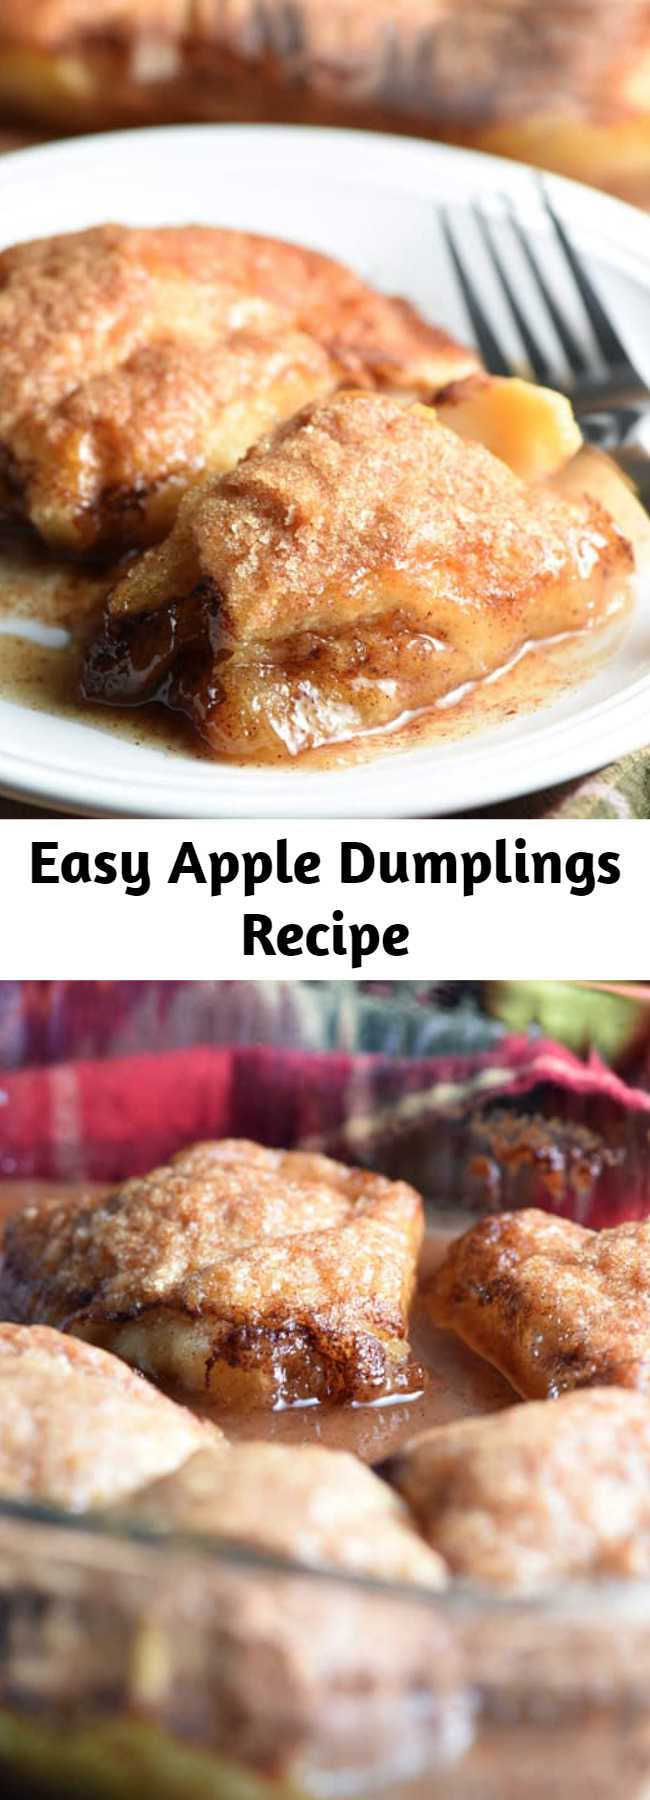 Easy Apple Dumplings Recipe - These Easy Country Apple Dumplings are soft and gooey on the bottom, but crispy on top, and they taste like apple pie. So easy and ridiculously good. Plus the house smells amazing while they bake!